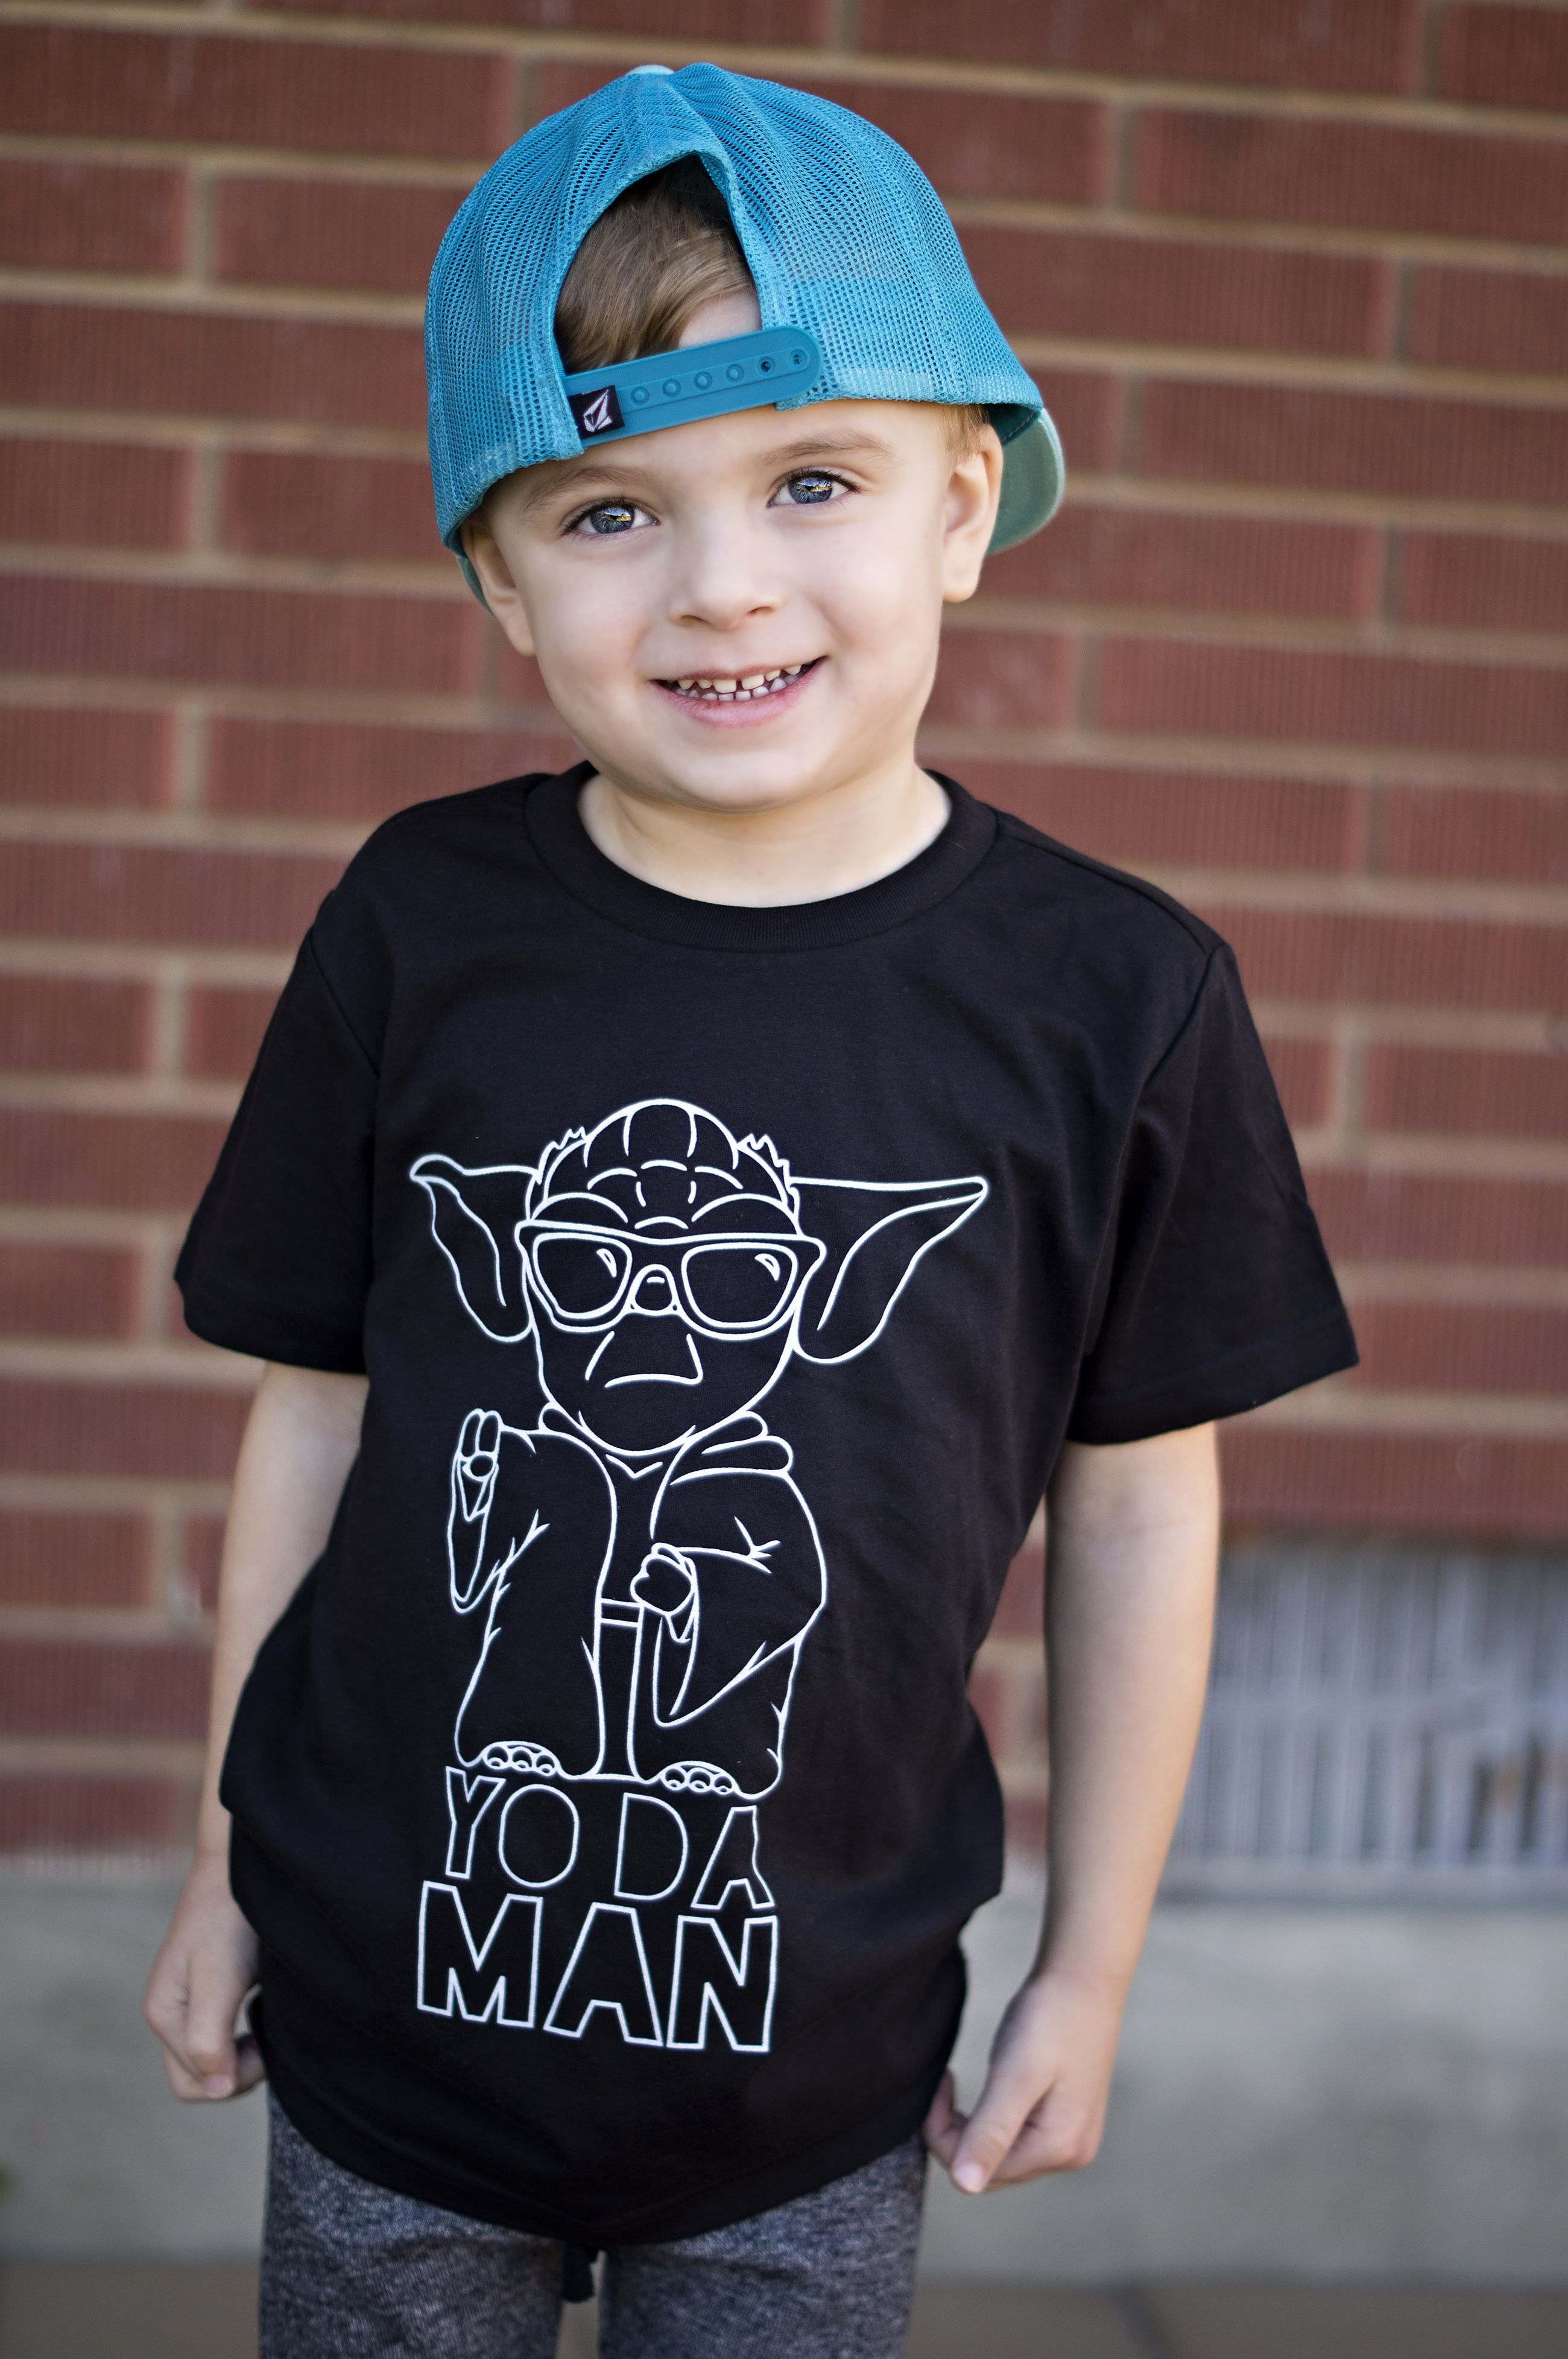 Black t shirt for toddler - Modern Hipster Kids Boy Fashion Star Wars Shirts Graphic Tees Hand